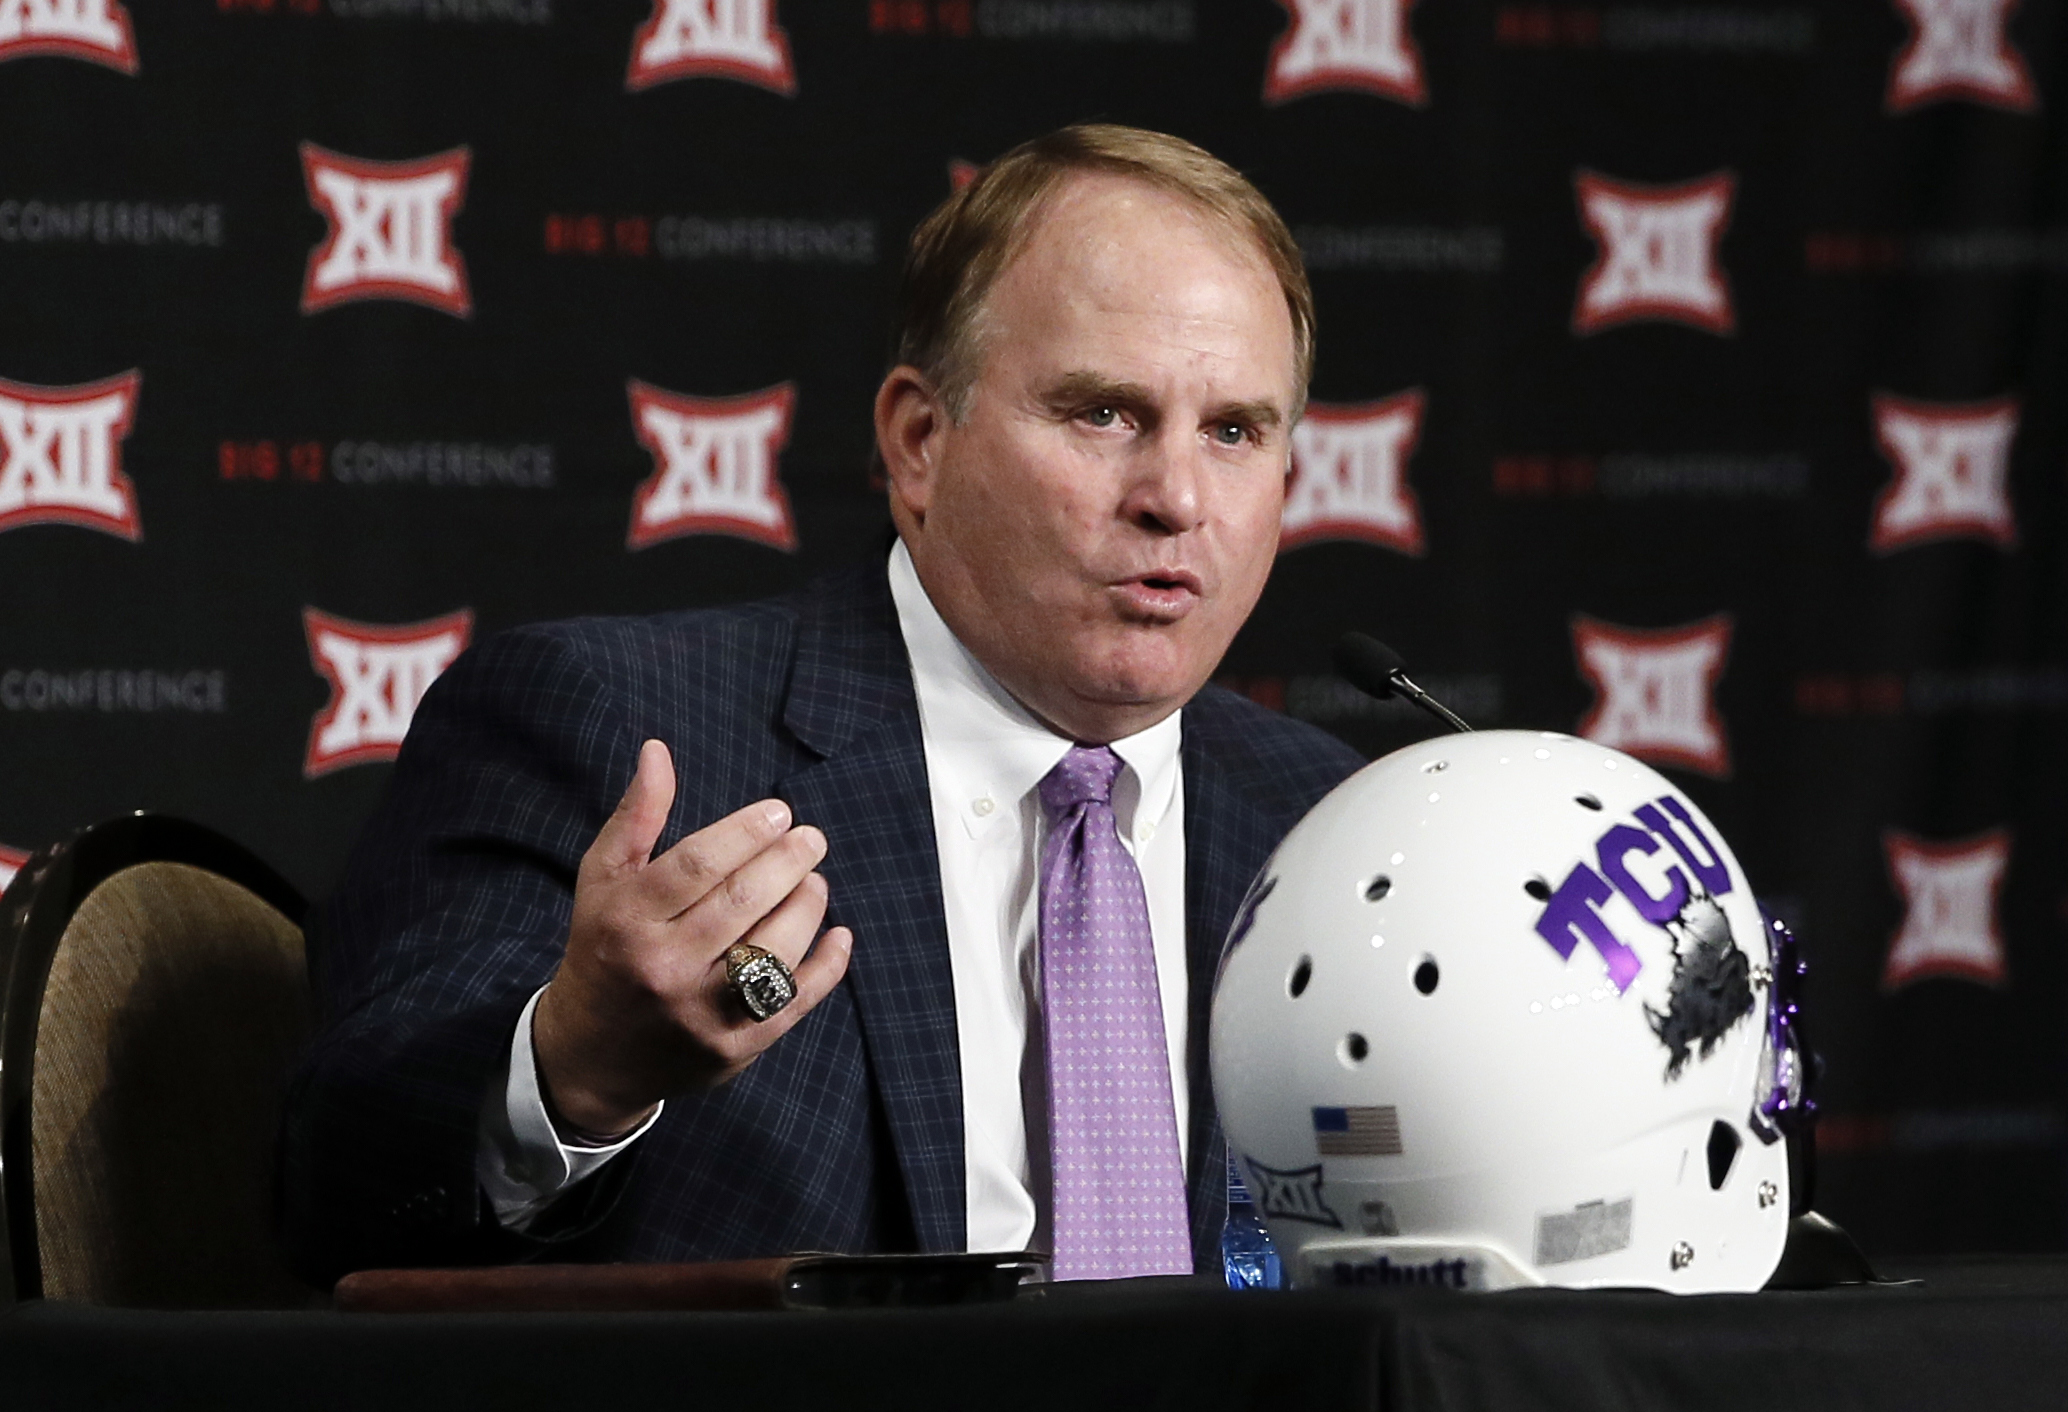 TCU head football coach Gary Patterson responds to questions from reporters at Big 12 Conference Football Media Days Monday, July 20, 2015, in Dallas. (AP Photo/Tony Gutierrez)